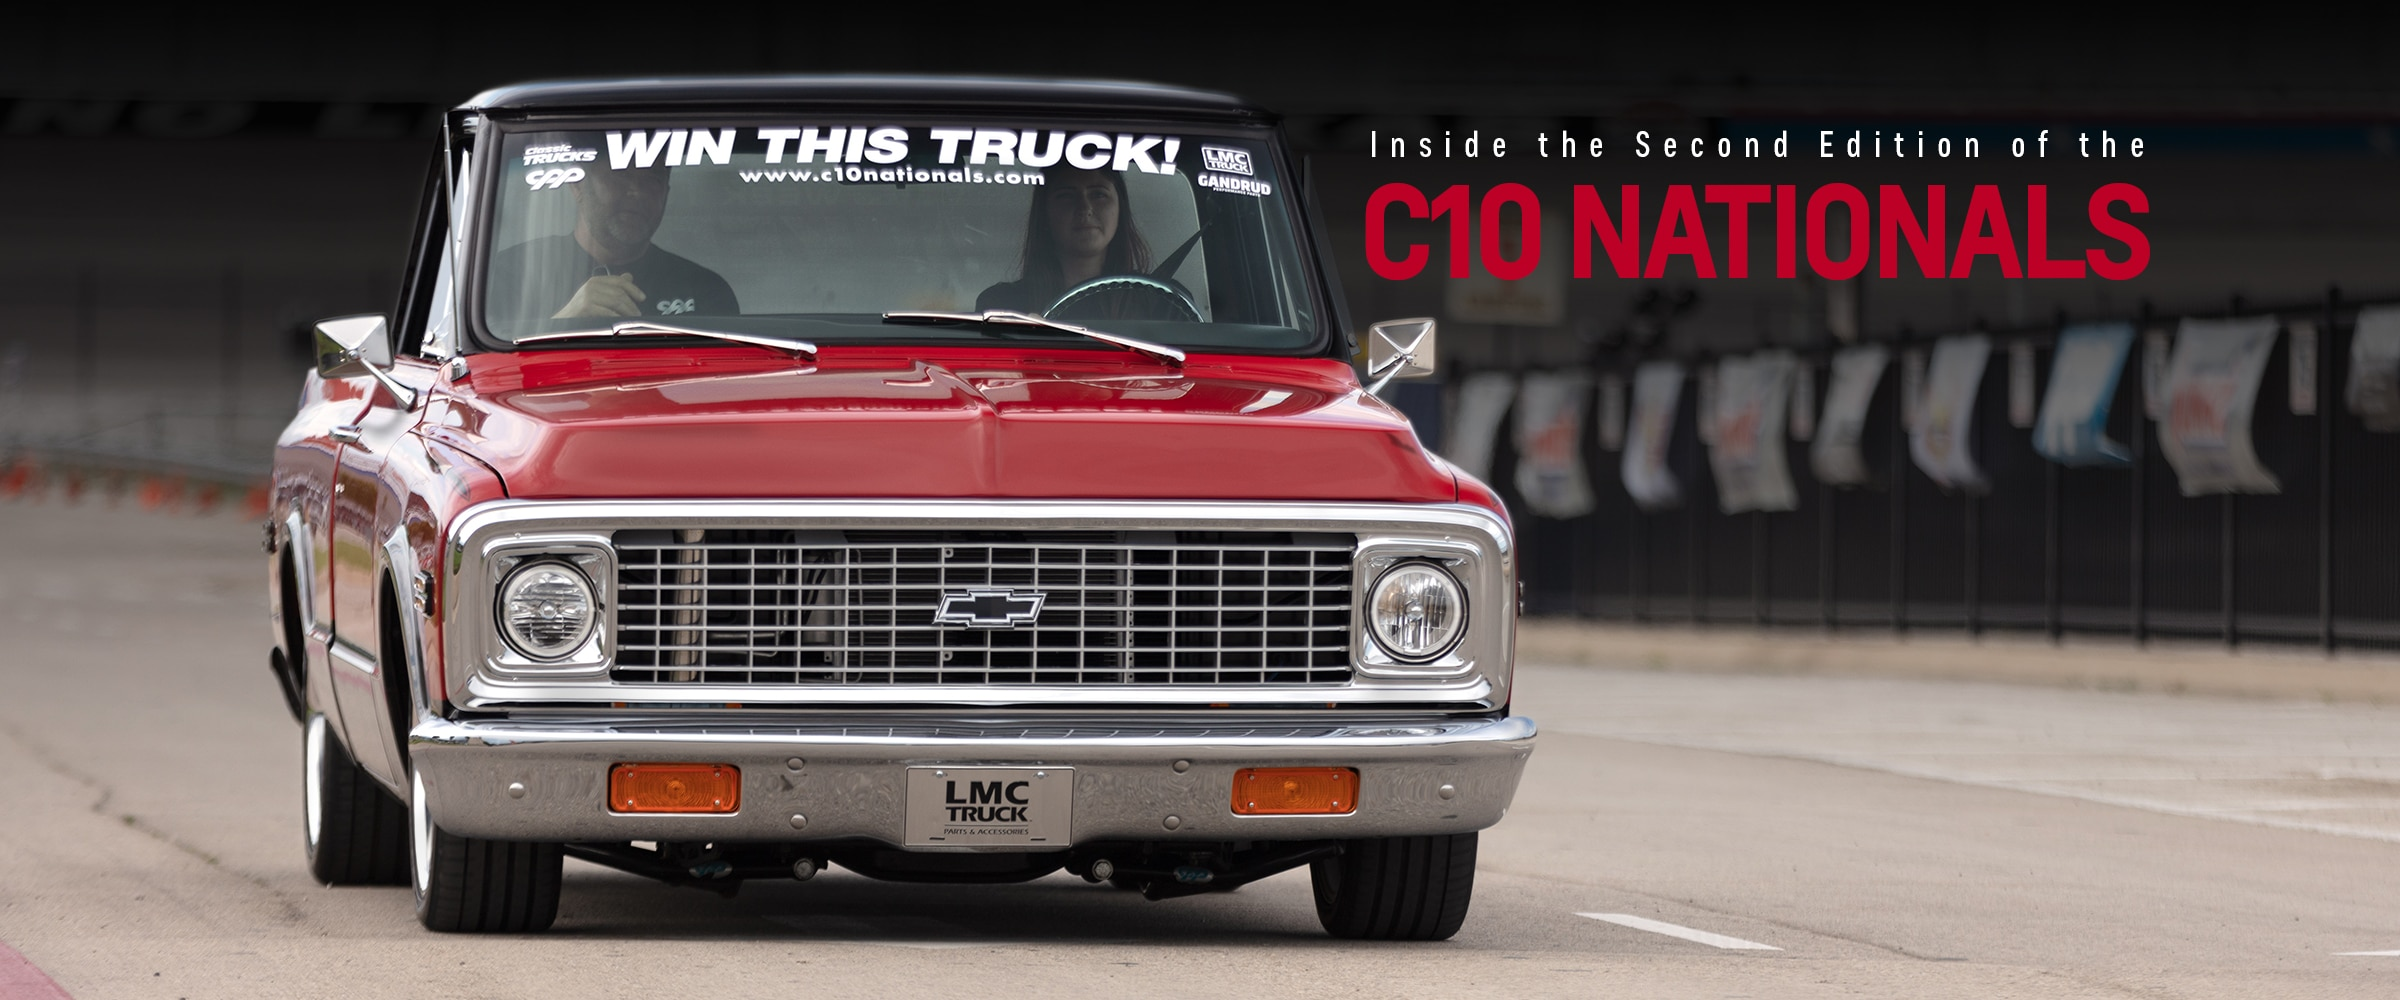 Vehicles, Events, Chevy, Chevrolet, Chevrolet Performance, Trucks, Chevy Trucks, C10, Chevrolet C10, Chevy C10, Silverado, Chevy Silverado, Chevrolet Silverado, Classic Trucks, C10 Nationals, Ft. Worth, Fort Worth, Texas, Texas Motor Speedway, Great American Speedway